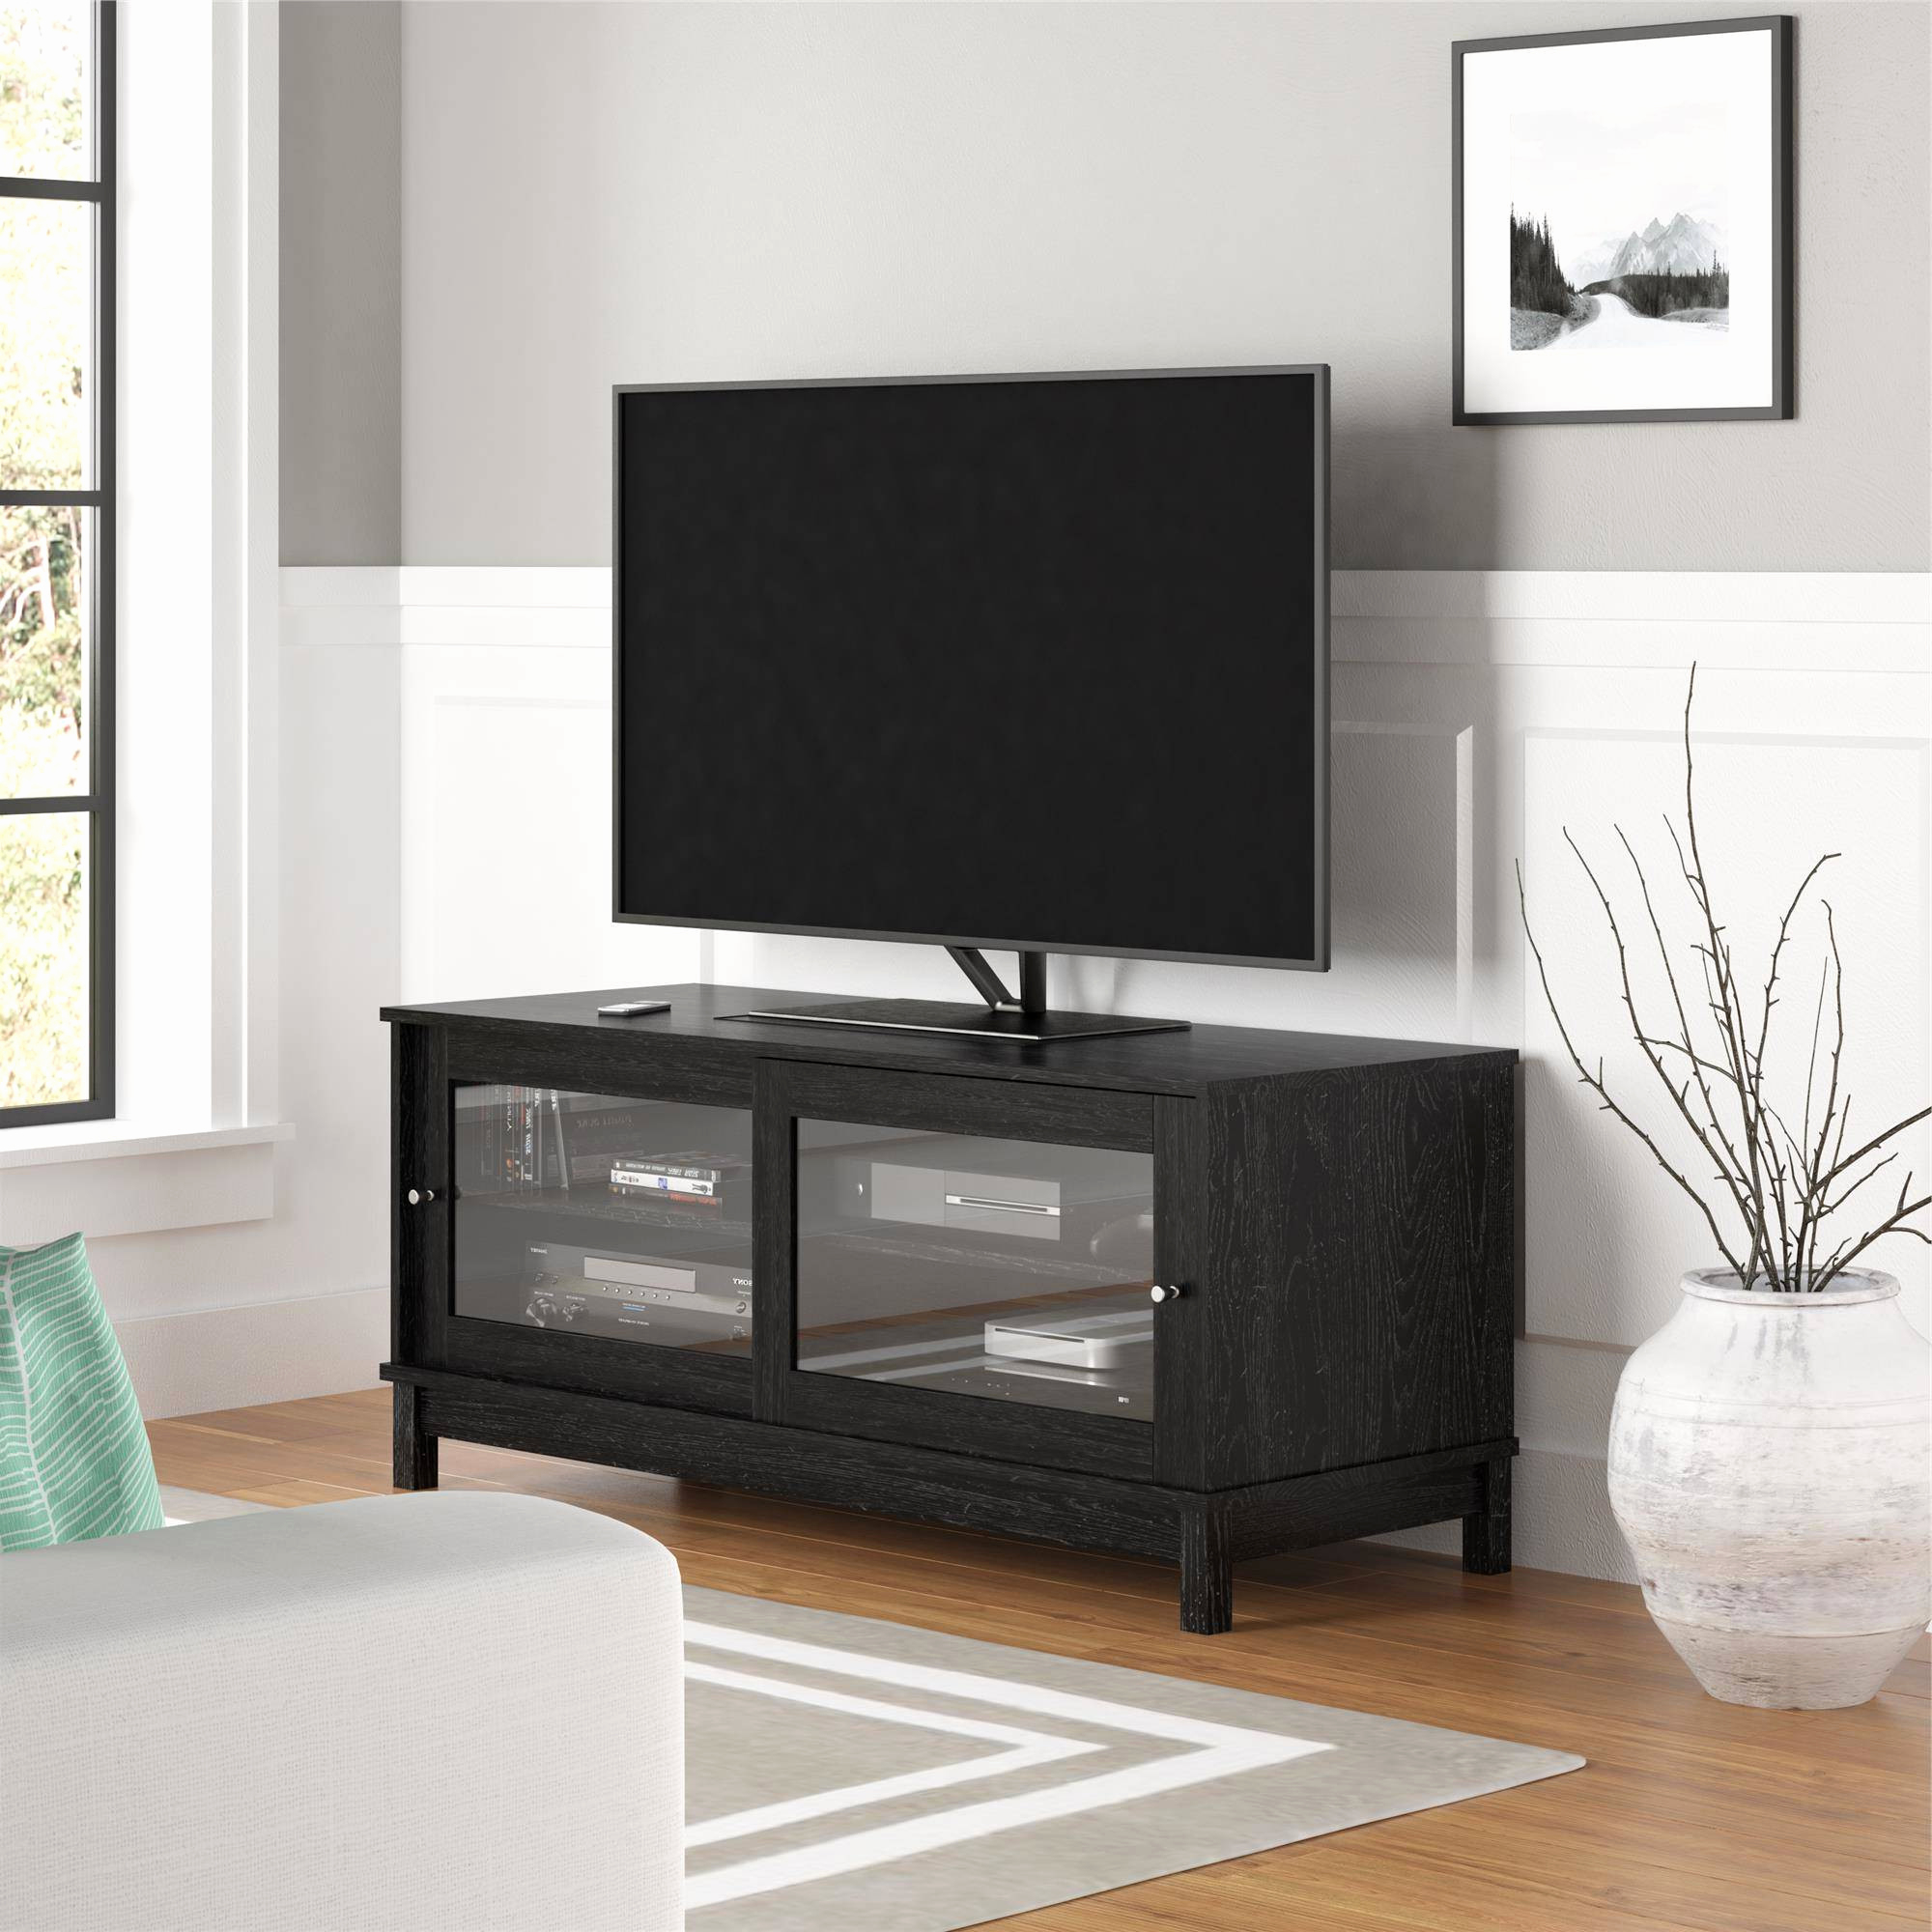 Fashionable Tempered Glass Tv Stand Stands With Mount Black Target Wood And Within Tv Cabinets With Glass Doors (View 19 of 20)